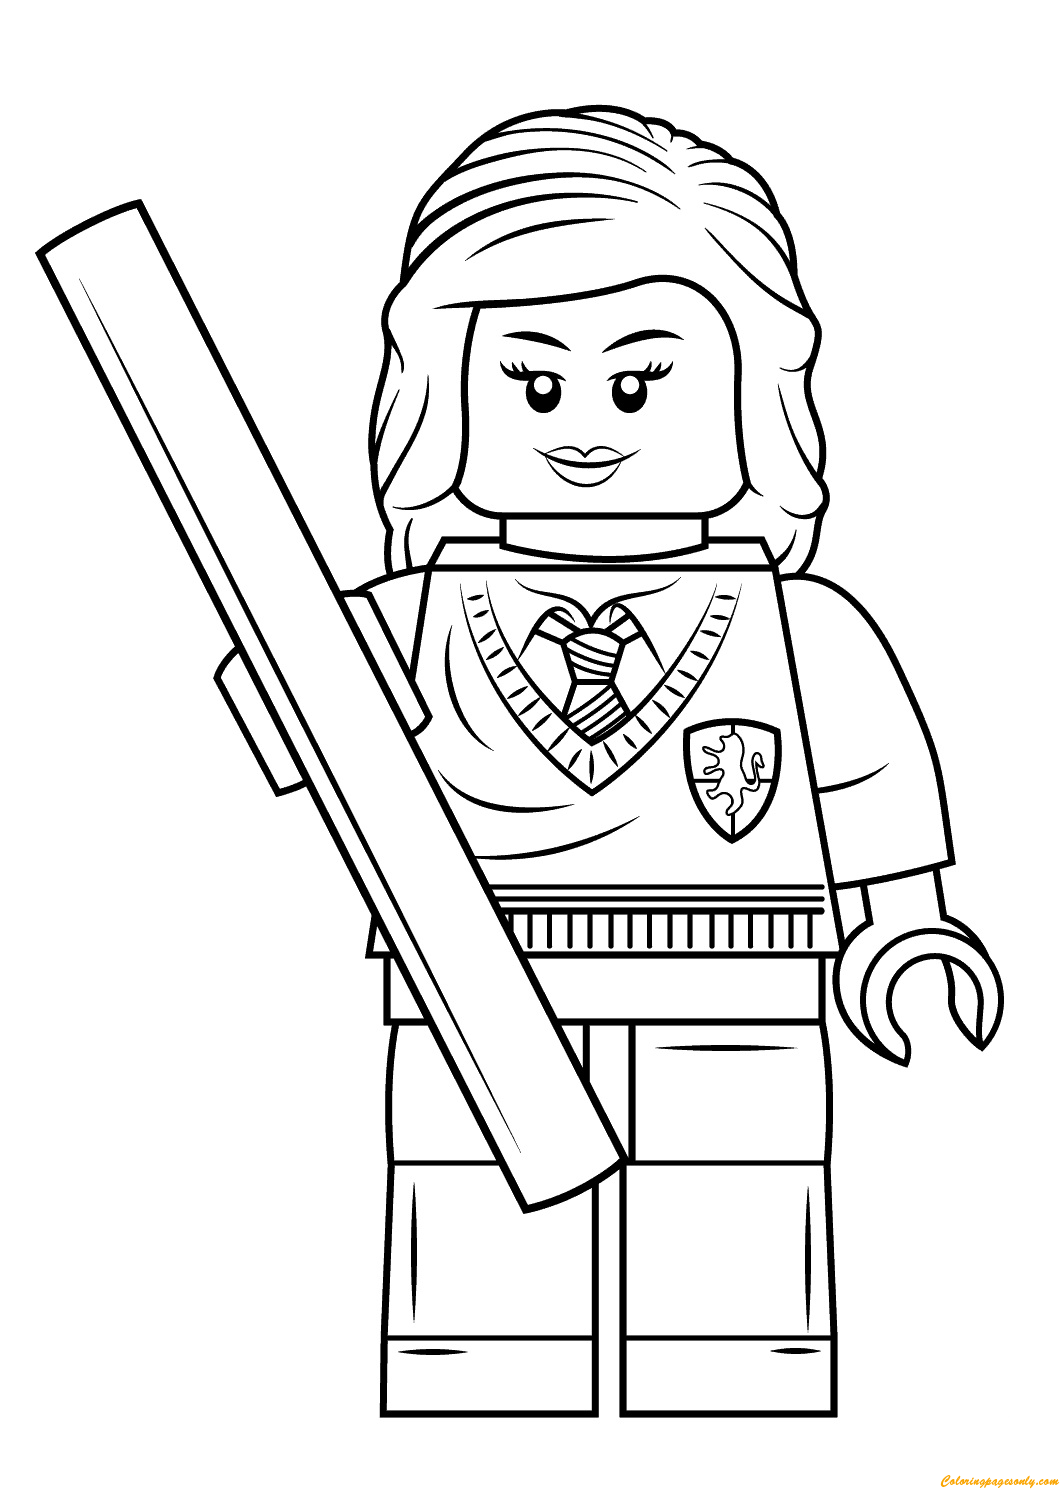 coloring pages harry potter lego - lego harry potter hermione granger coloring page free